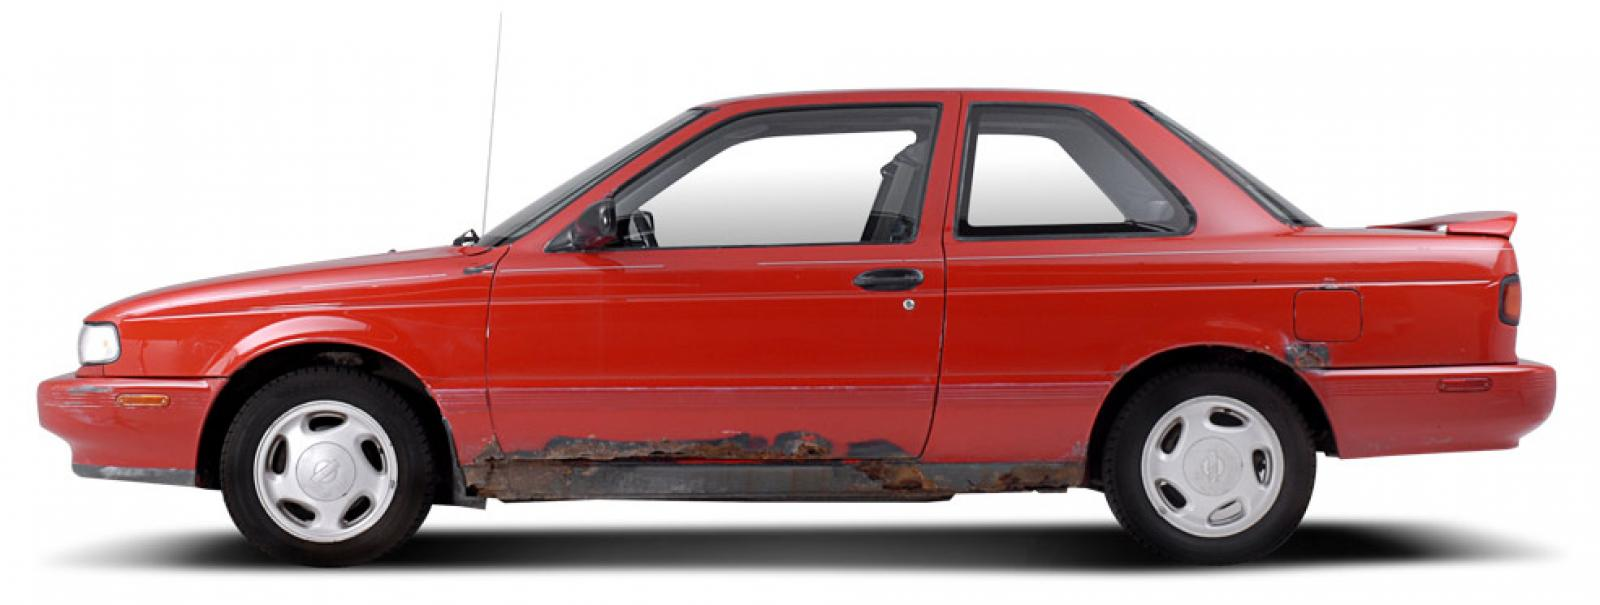 1991 Nissan Sentra Information And Photos Zombiedrive